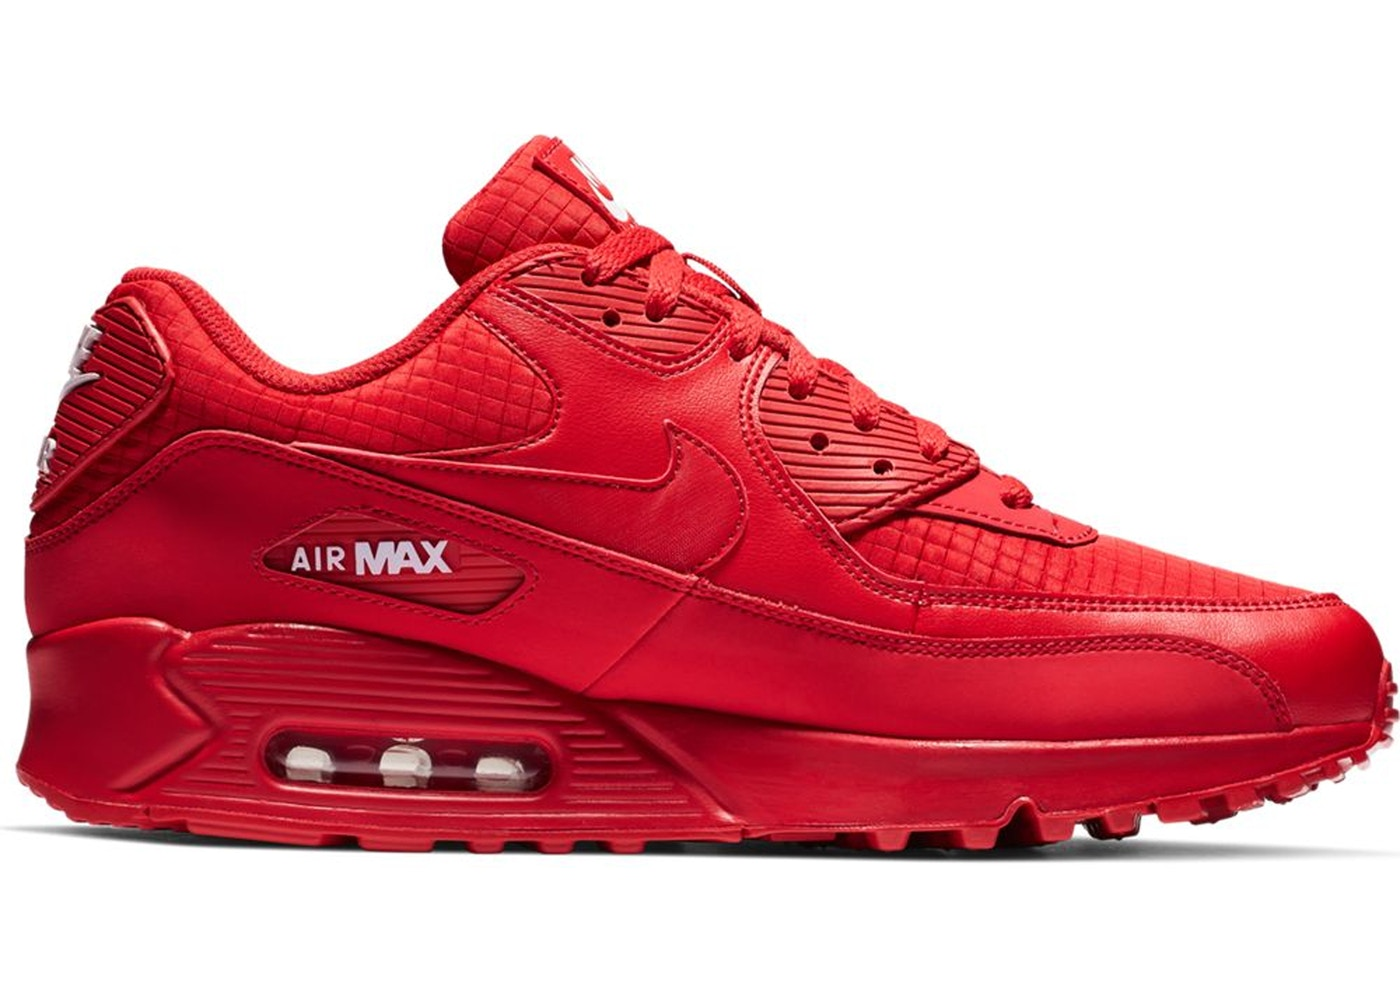 half off 018e3 7a88c Buy Nike Air Max 90 Shoes   Deadstock Sneakers